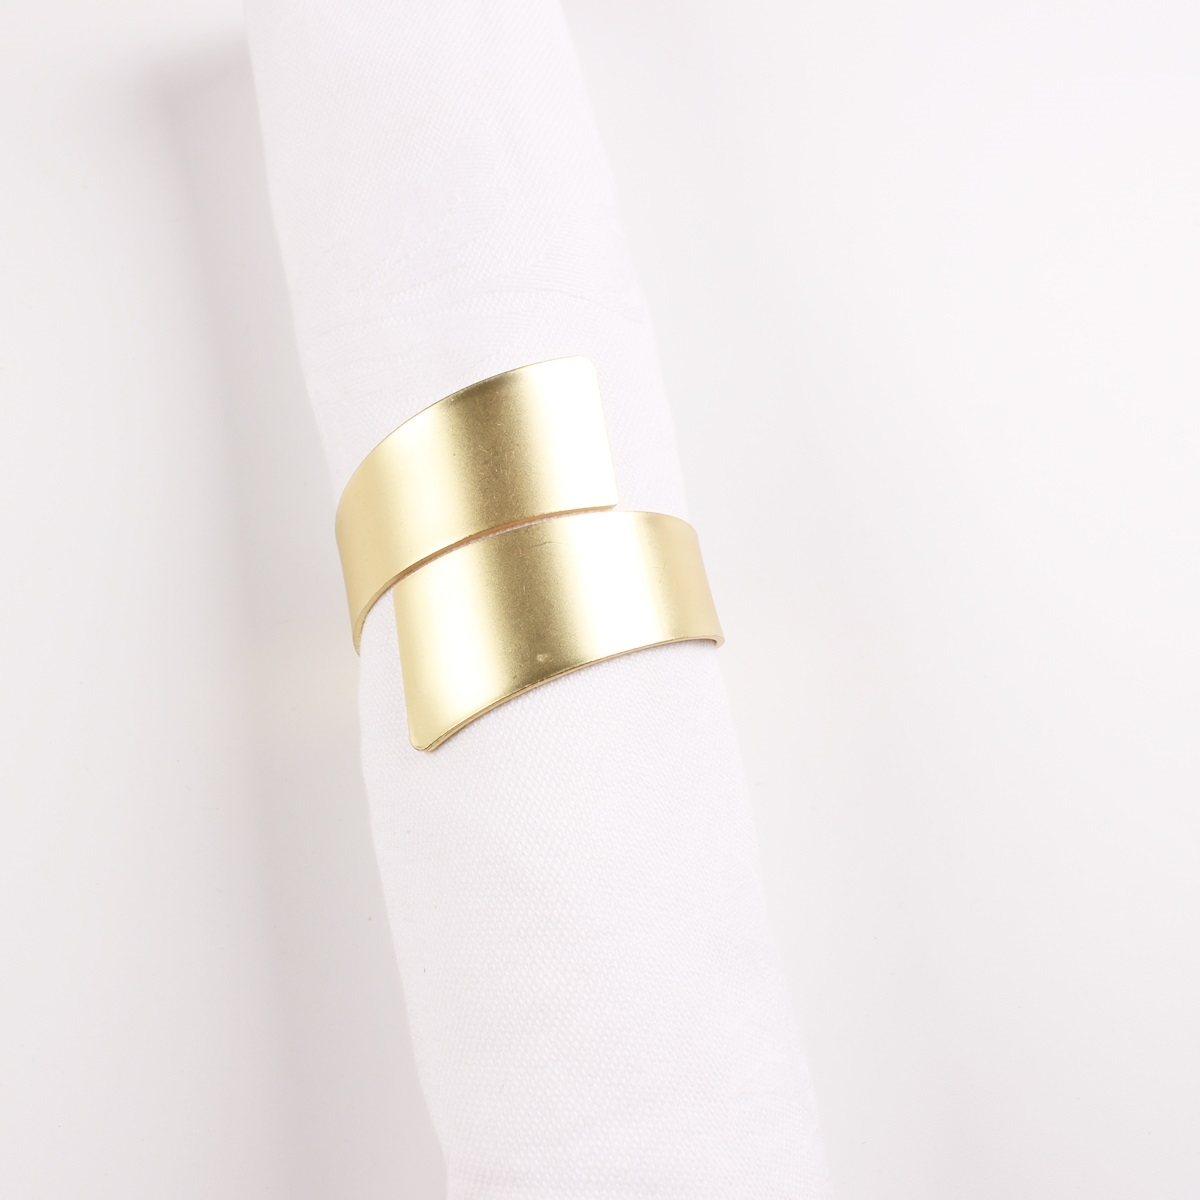 Matted Gold Contemporary Cuff Design Napkin Rings - Set of 4